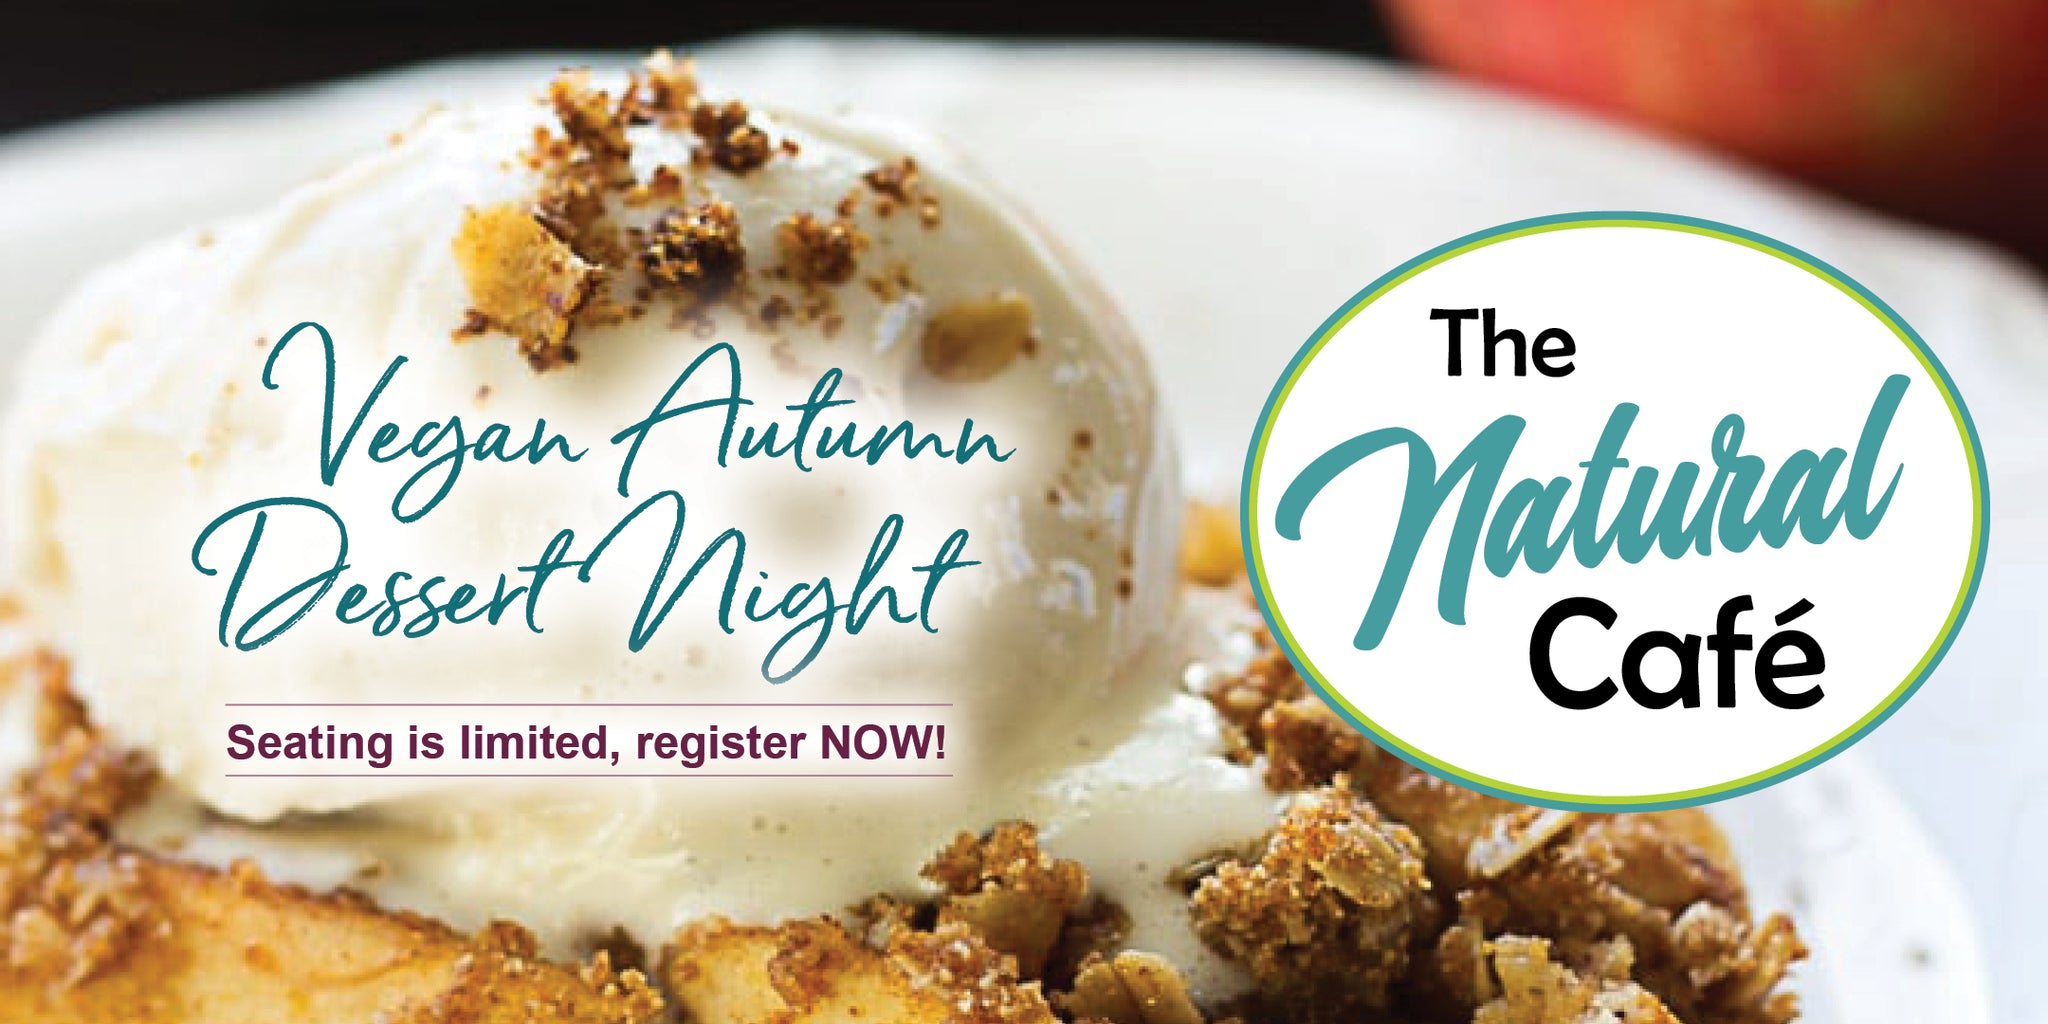 Oct 4: Vegan Dessert Night at The Natural Cafe